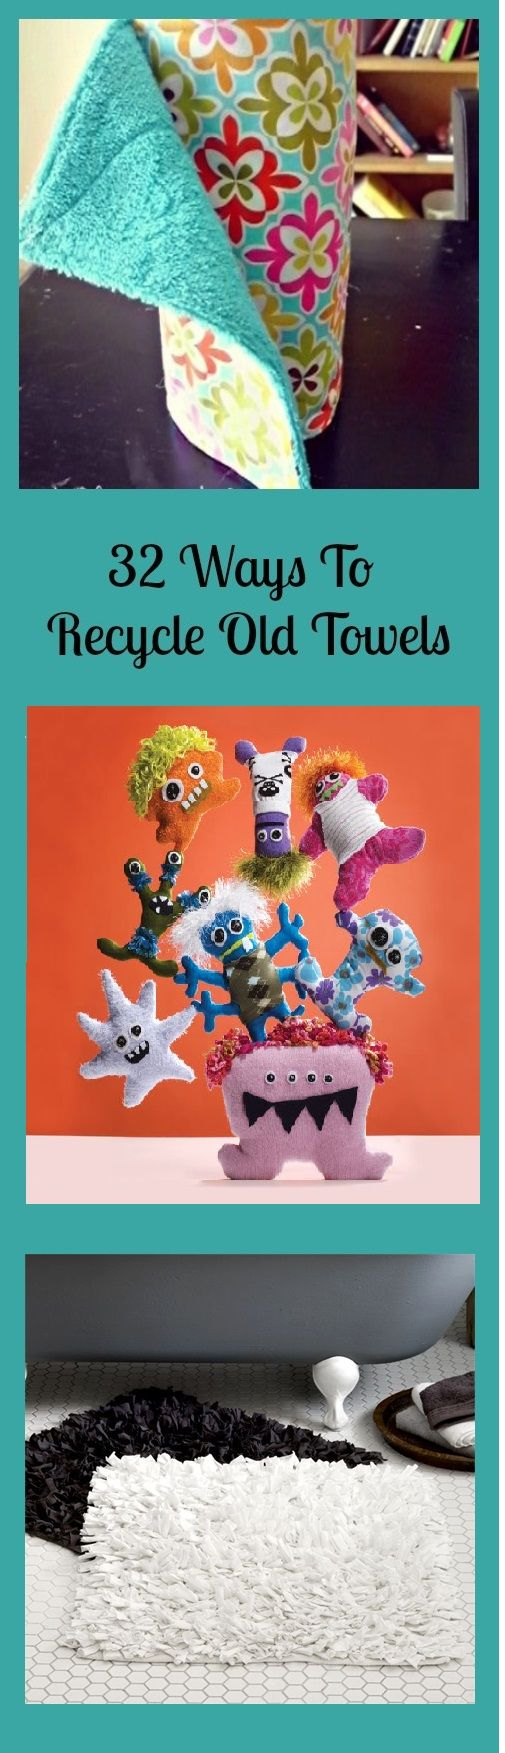 100 ways to recycle - 32 Ways To Recycle Old Towels